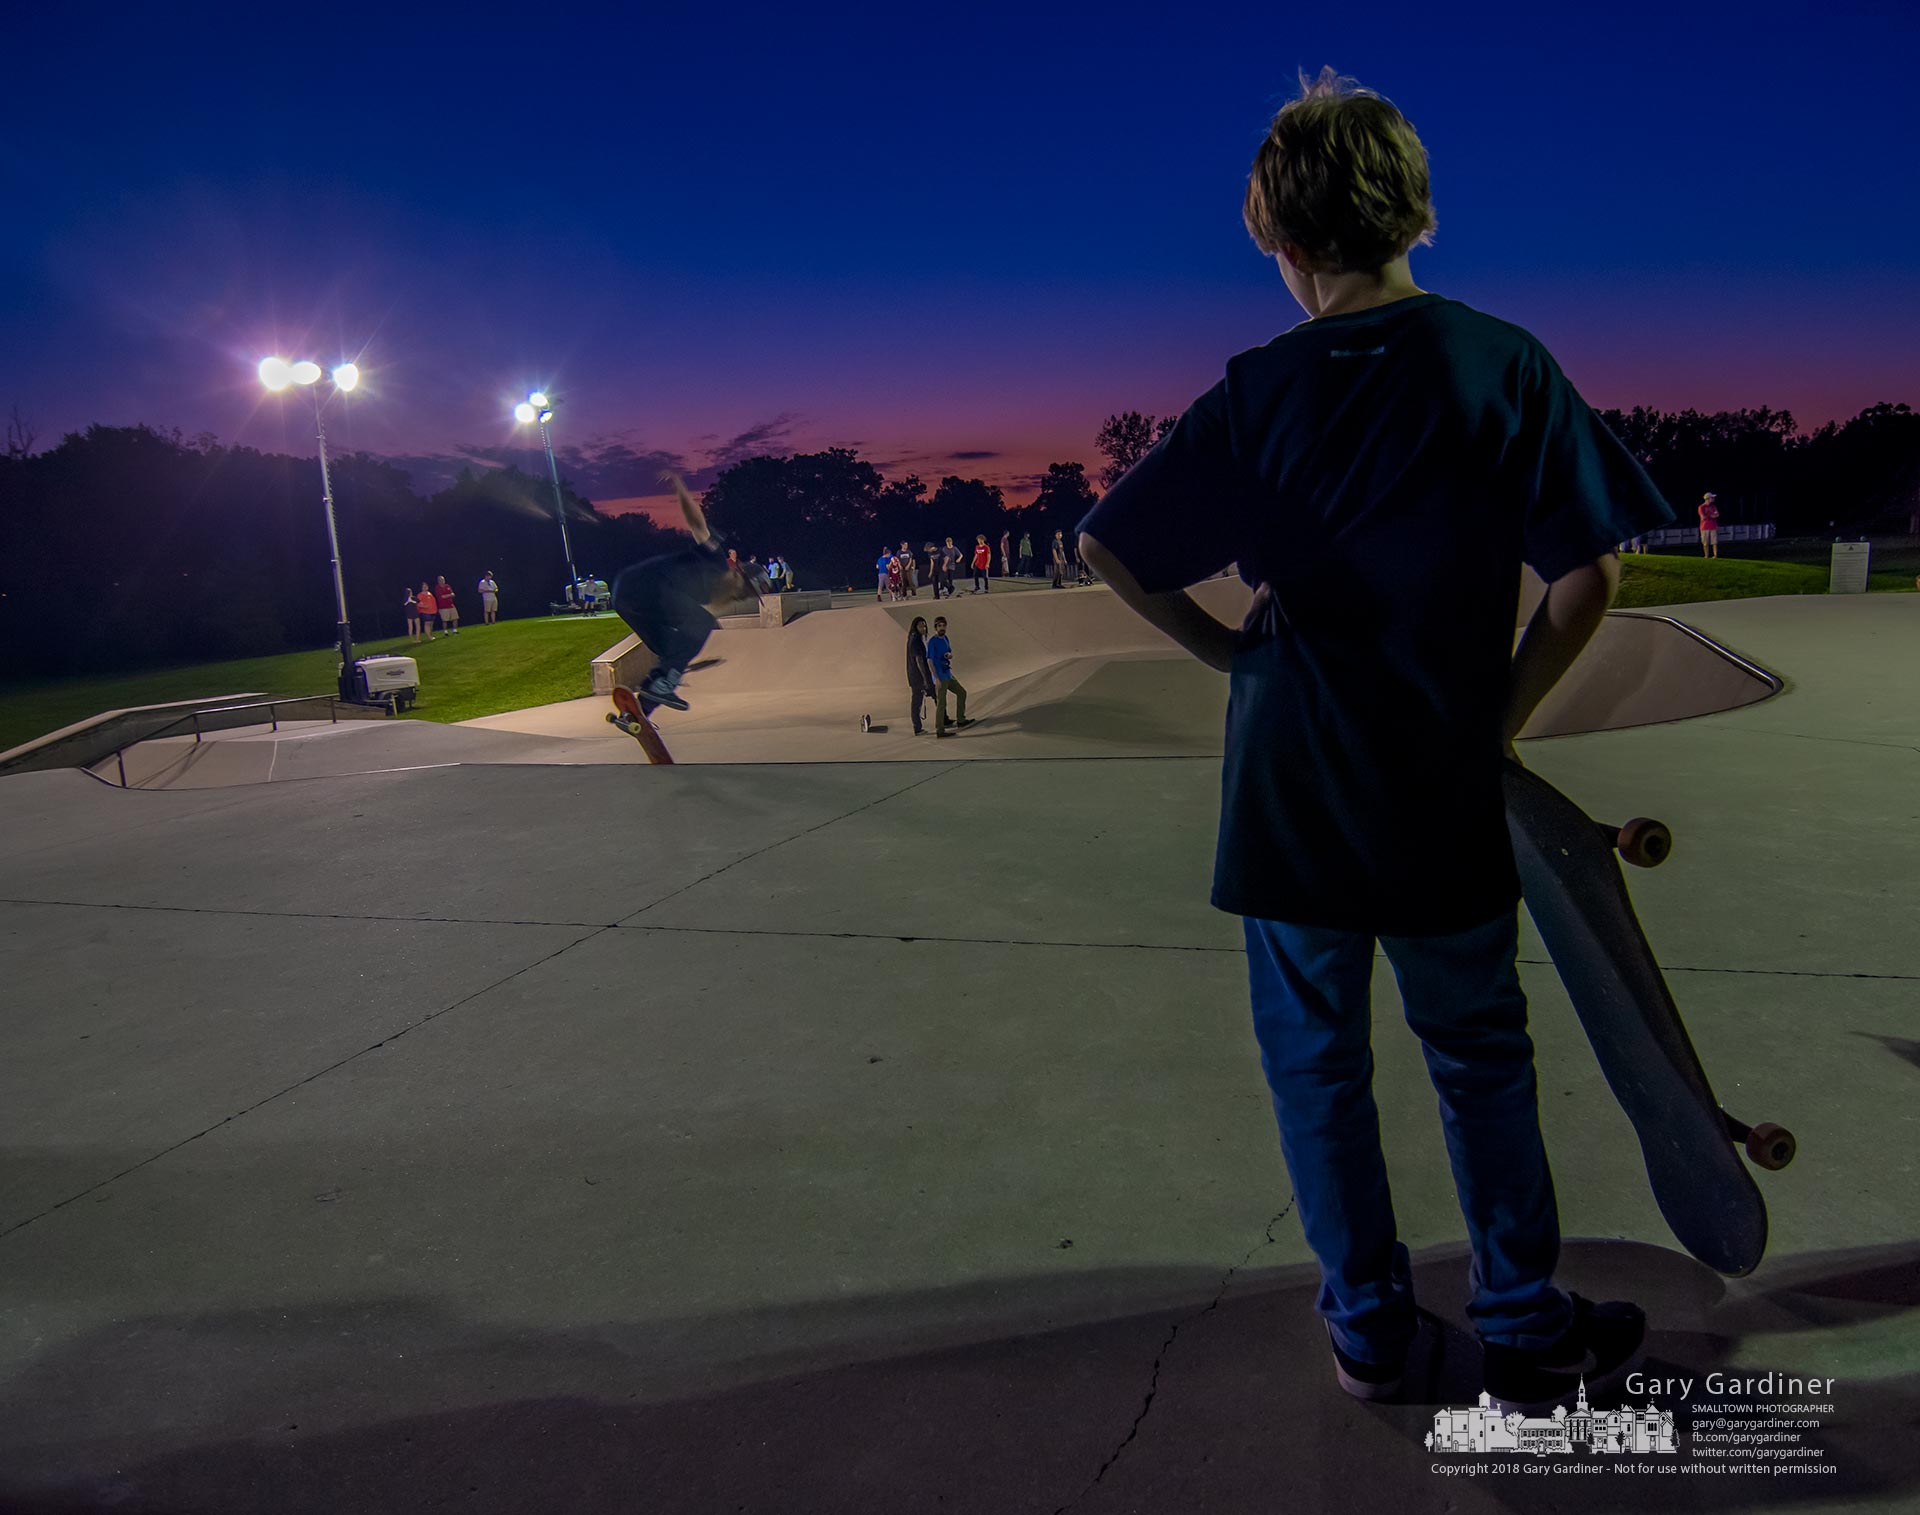 A young skater waits his turn at the start of Skate Night at the Westerville Skatepark, the once-a-year event where the skate bowl is lit at night for skaters. My Final Photo for Sept. 14, 2018.